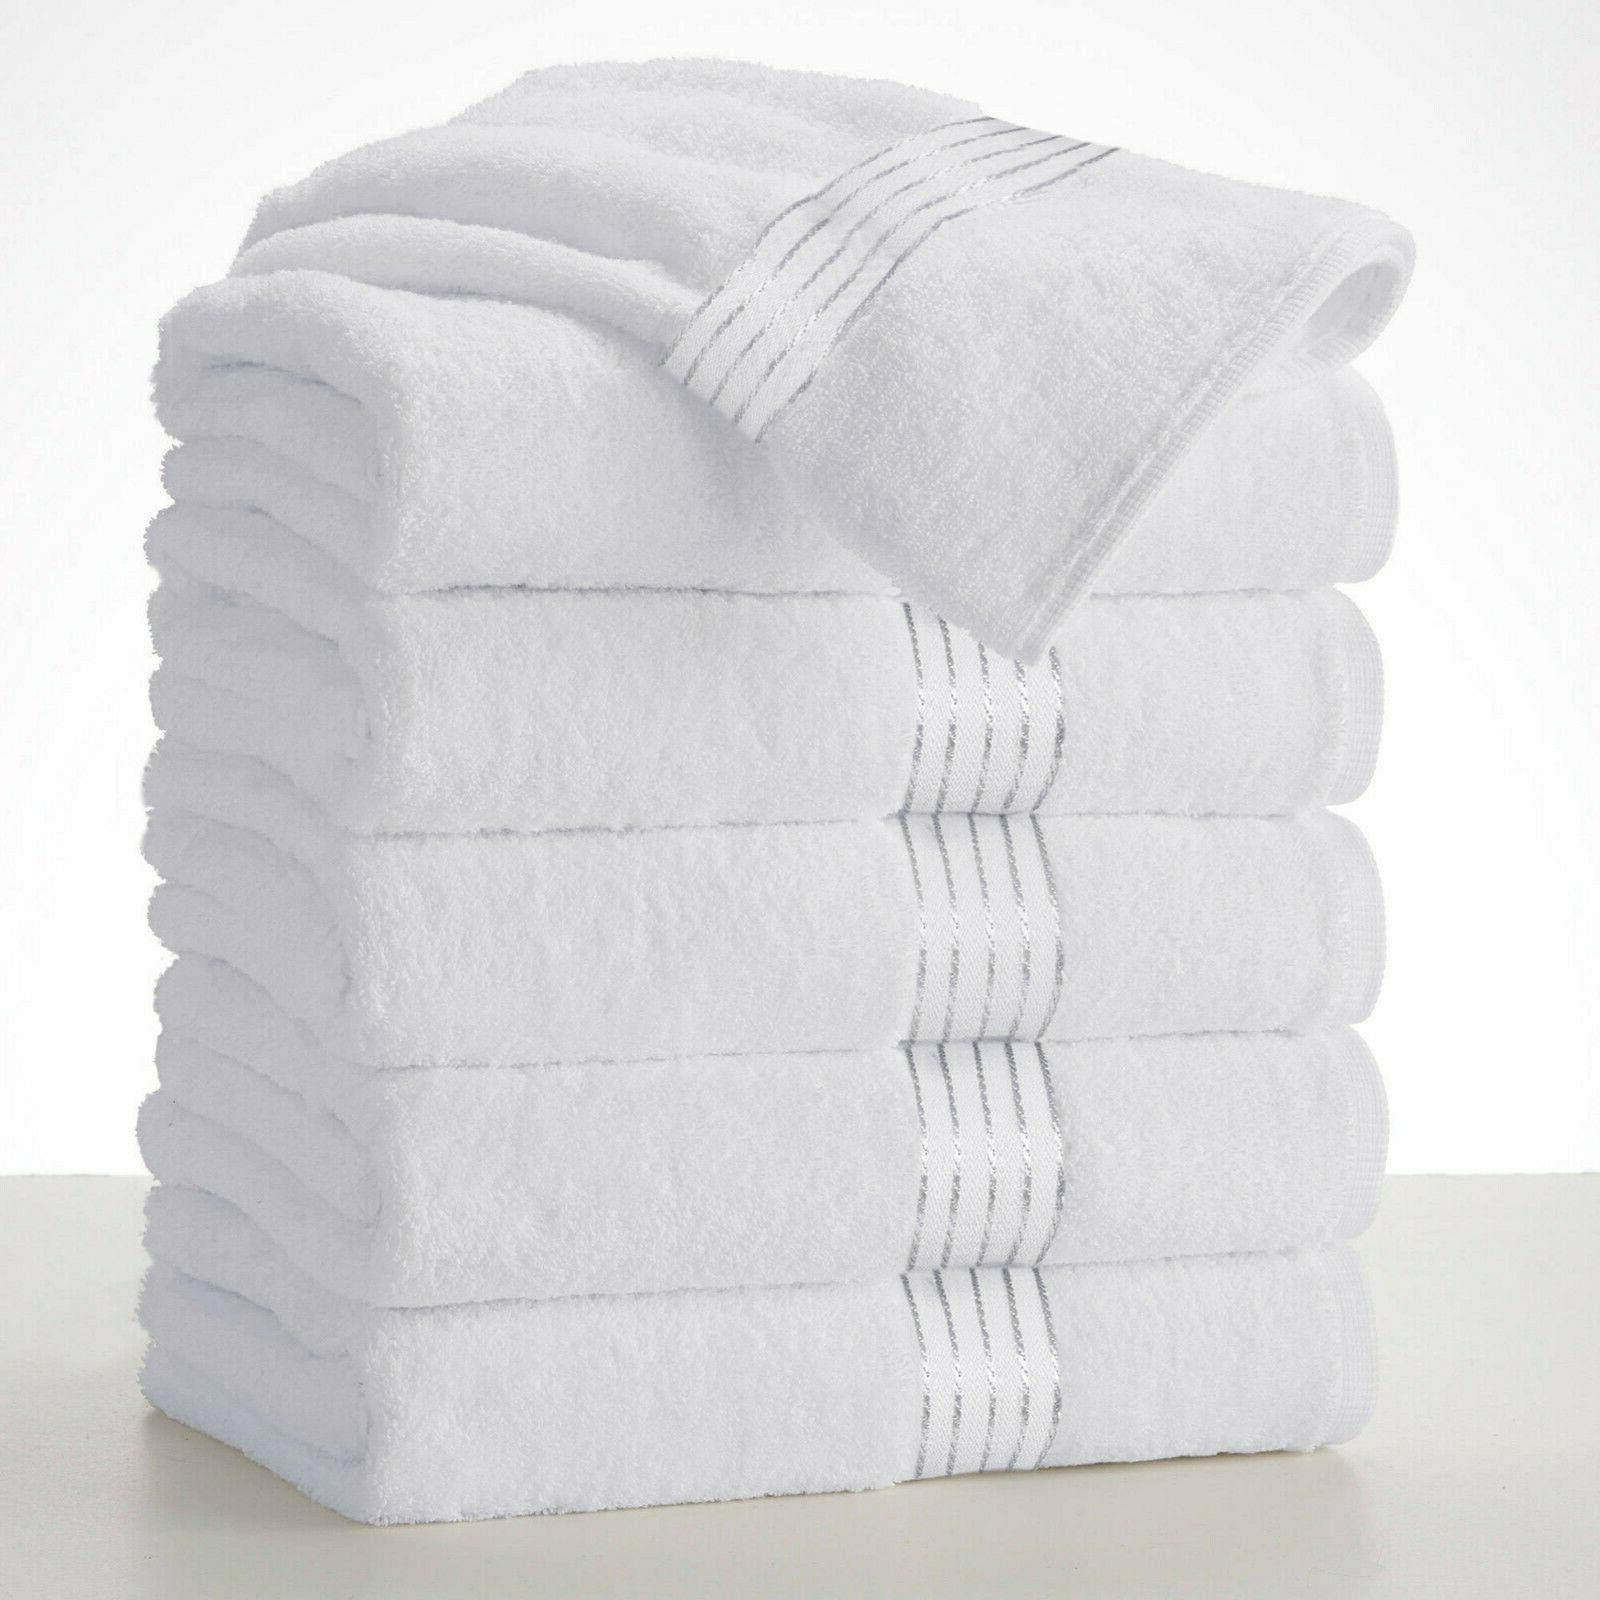 """Large Bath Towel Packs Sets Sheets 100/% Cotton 27/""""x58/"""" 450 GSM Highly Absorbent"""